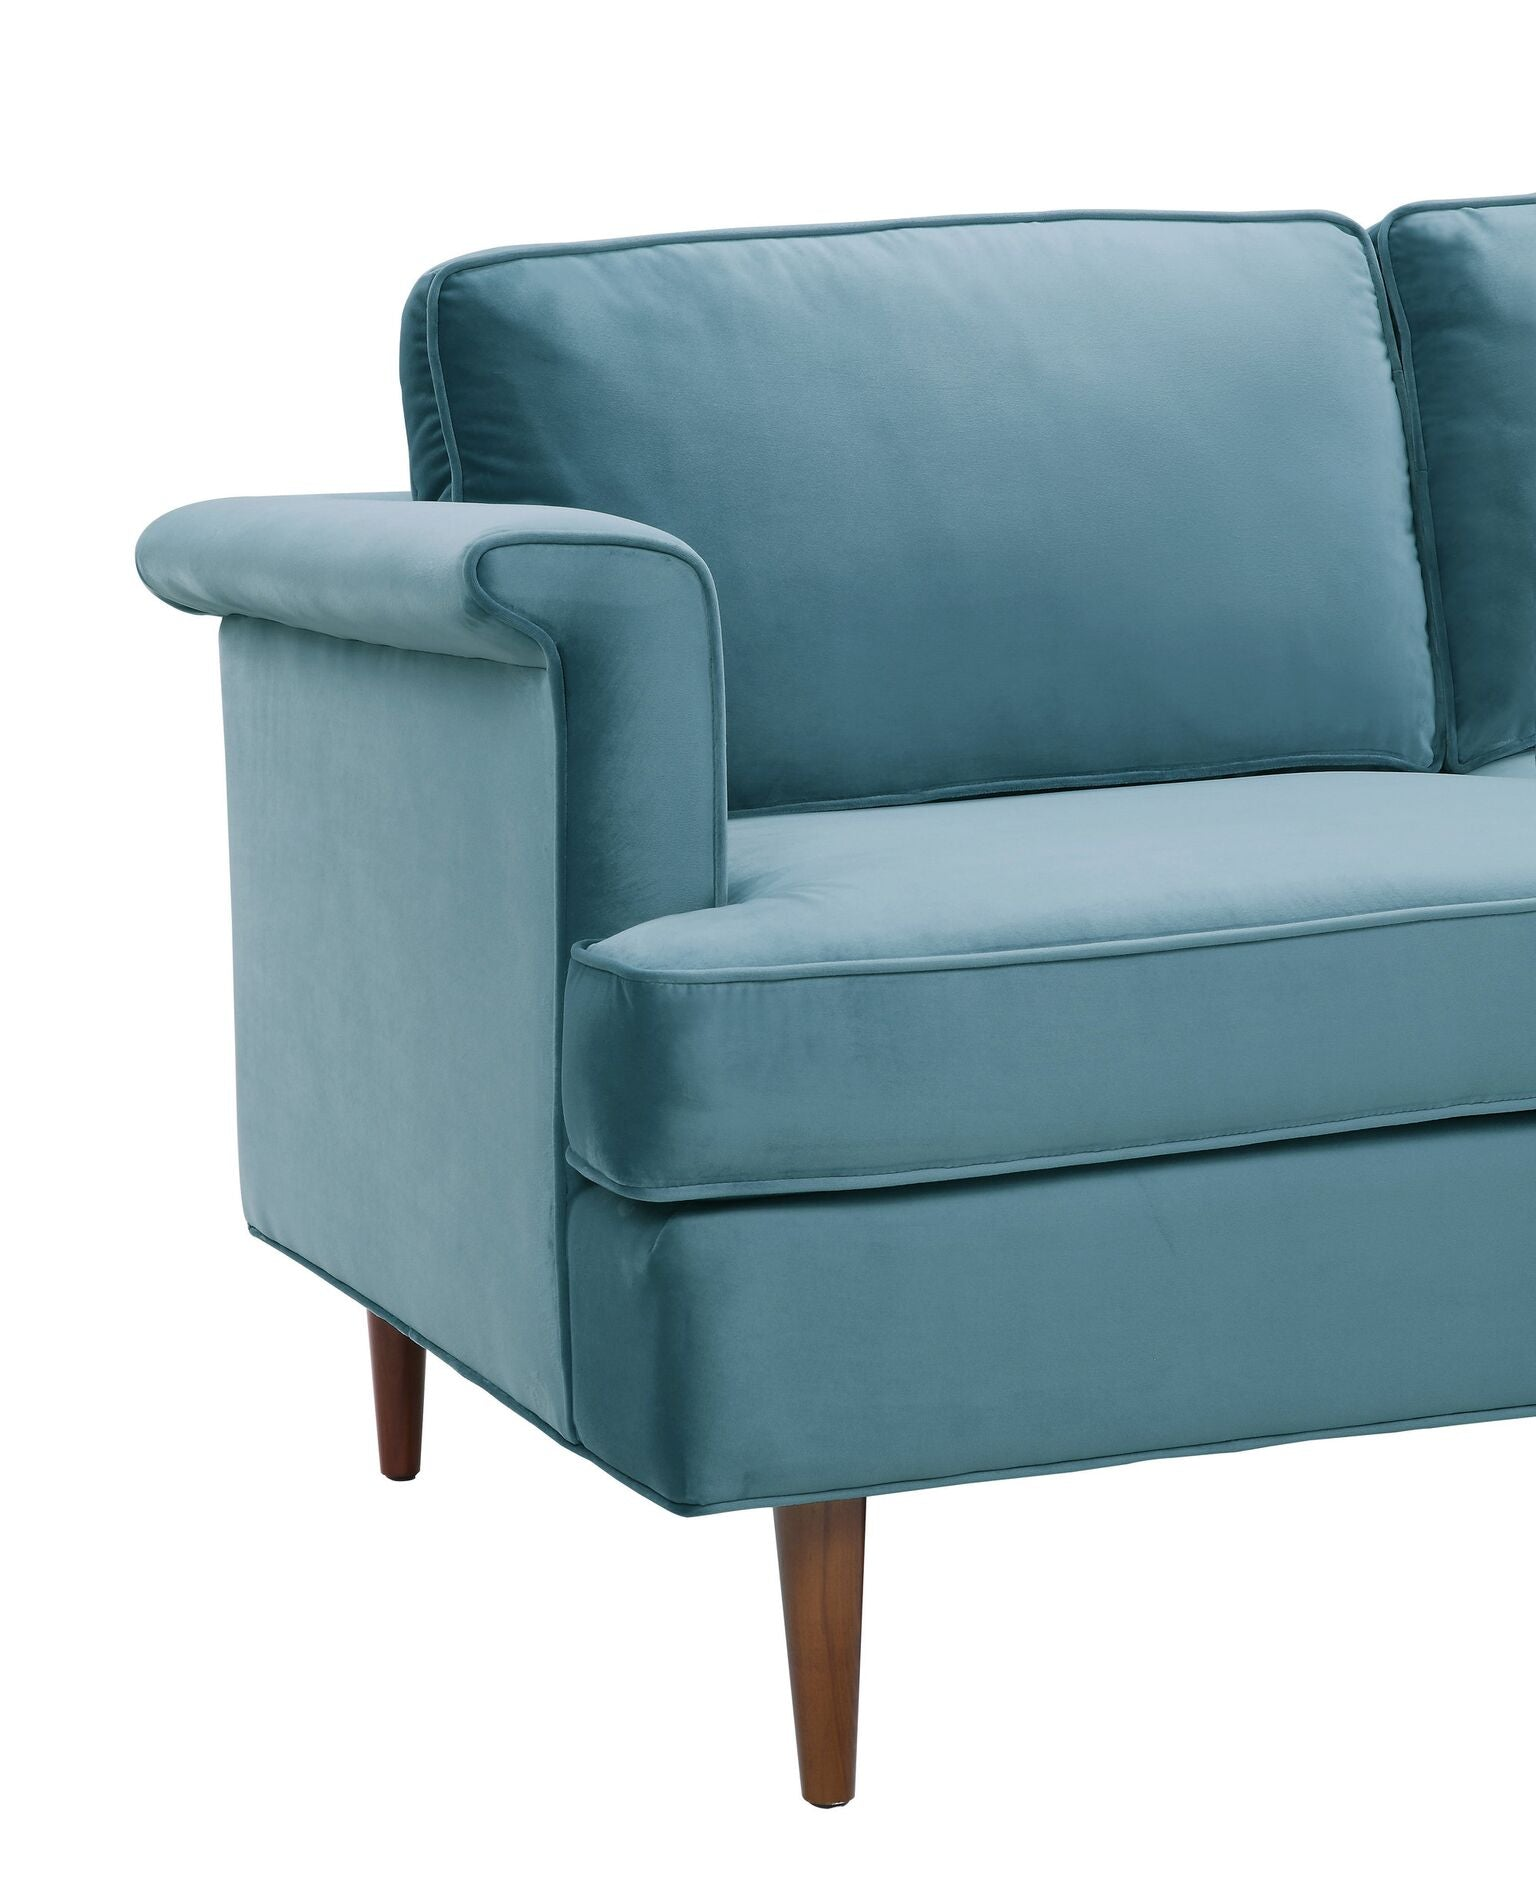 Porter Sea Blue Sofa - State.Mint Home & Garden